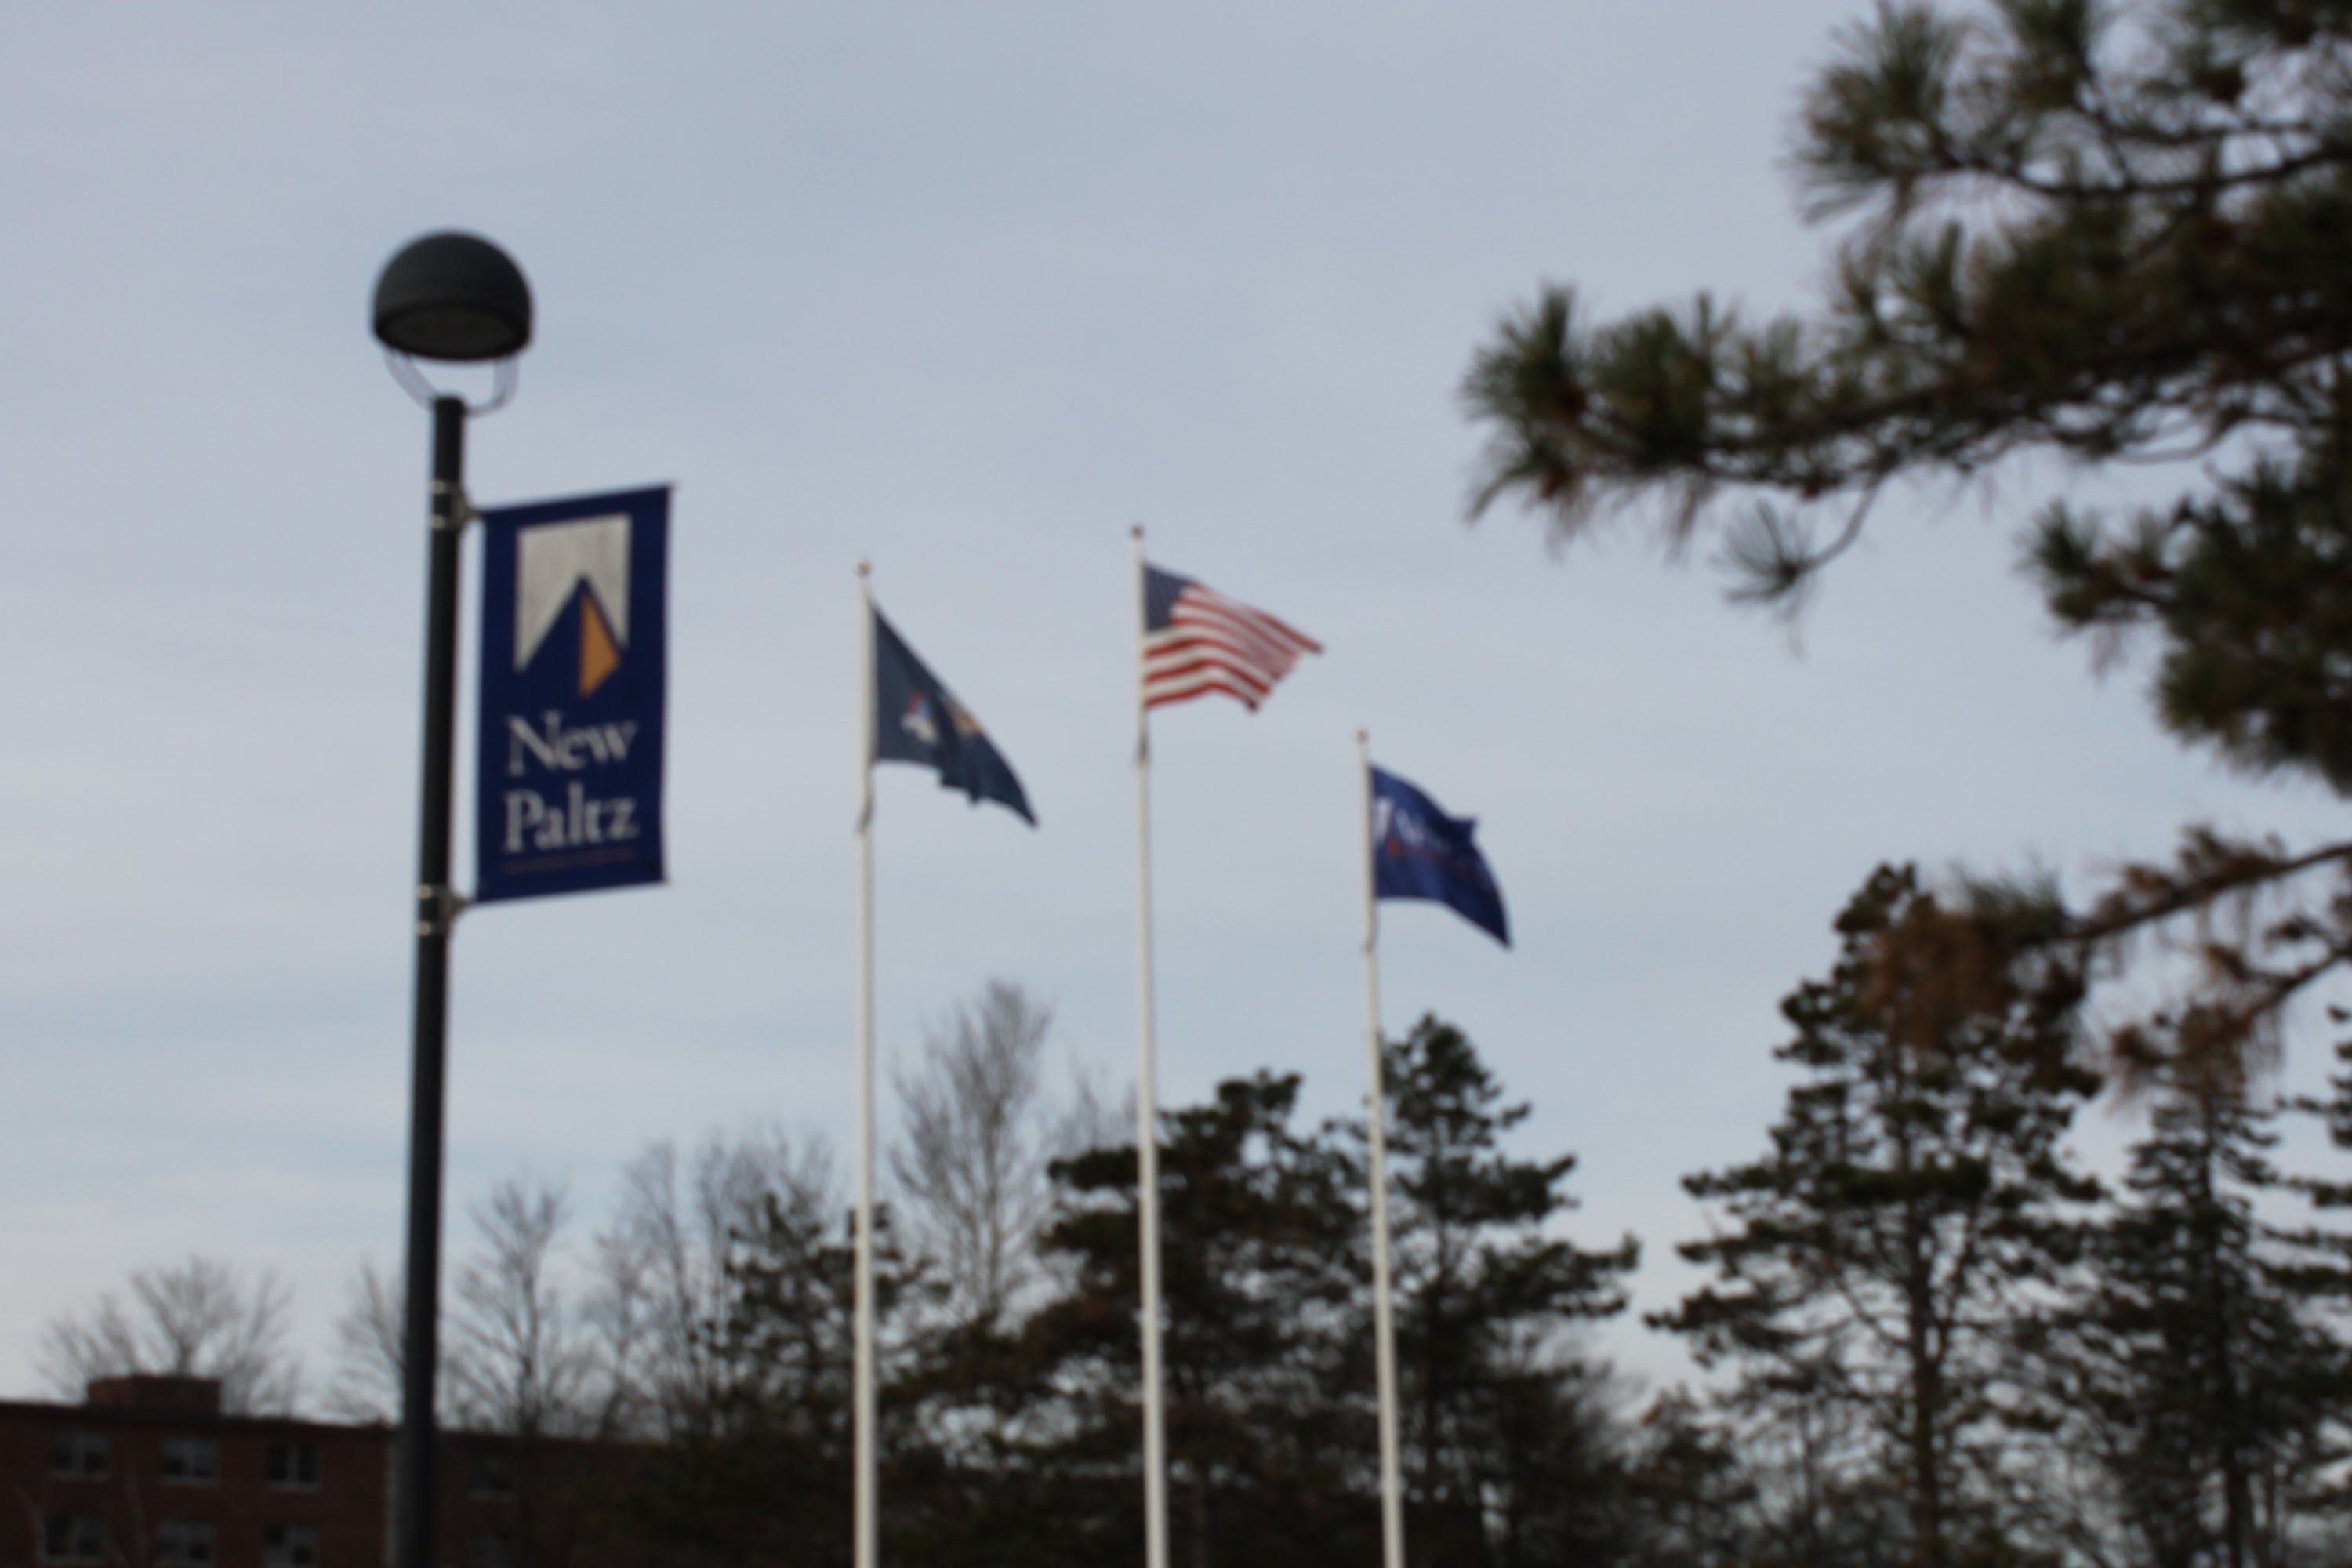 Which SUNY New Paltz Icon Are You?